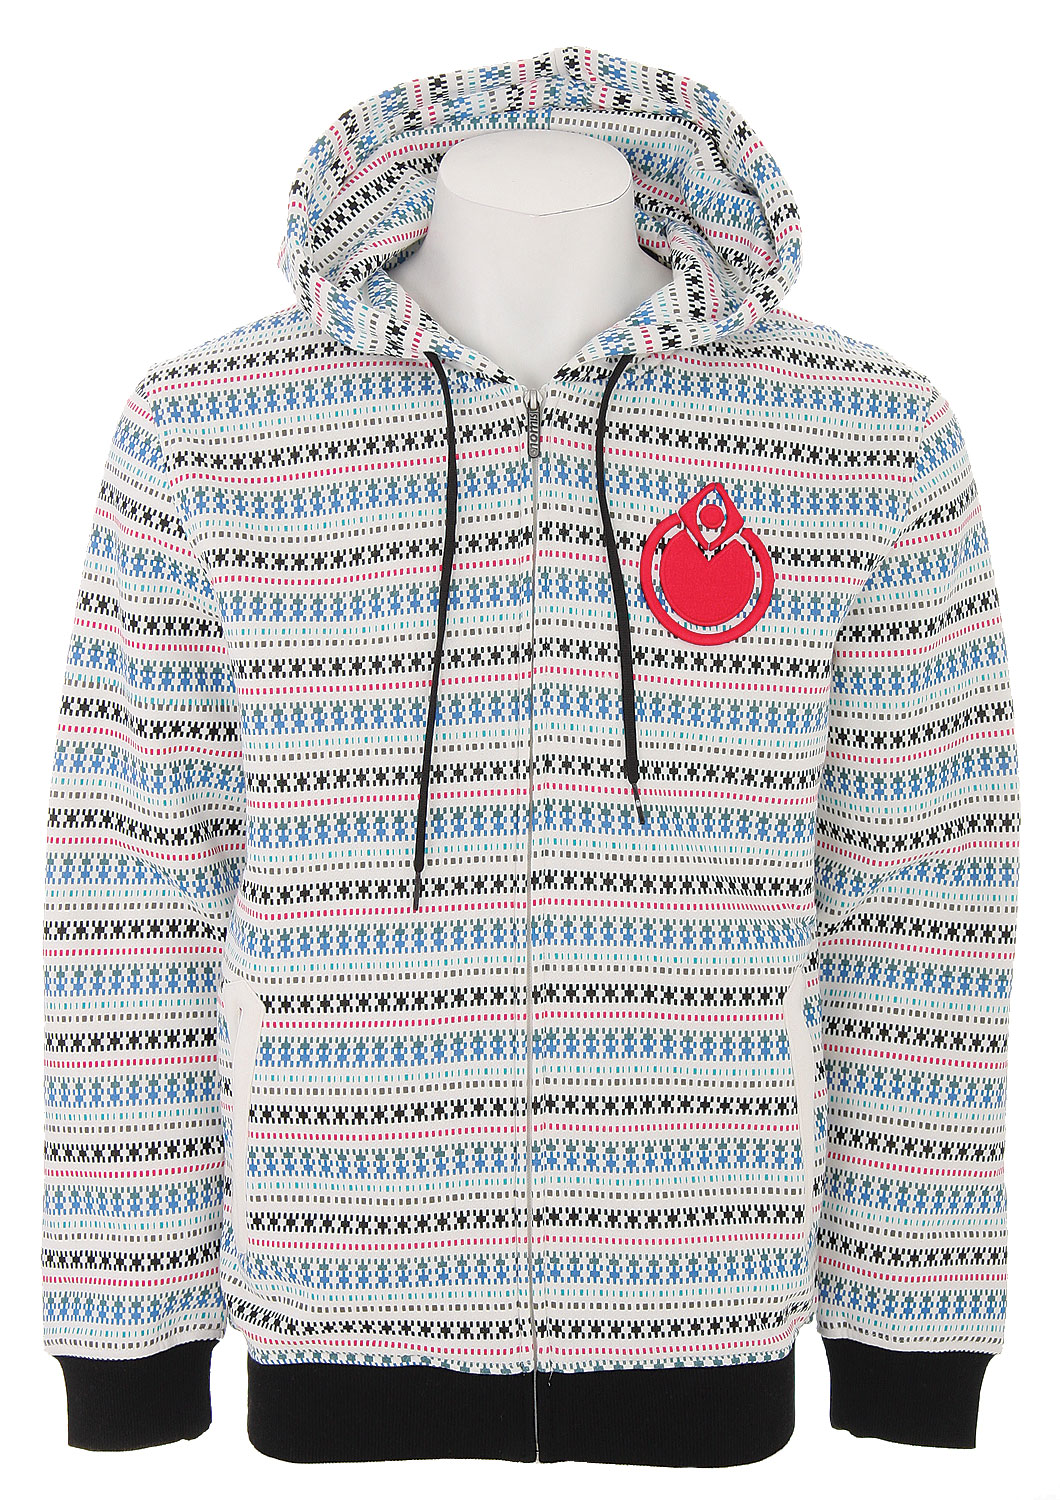 The Nomis Simon Skool Hoodie - 80% Cotton/20% Polyester / Waterbased Print / Full Zip - $34.95